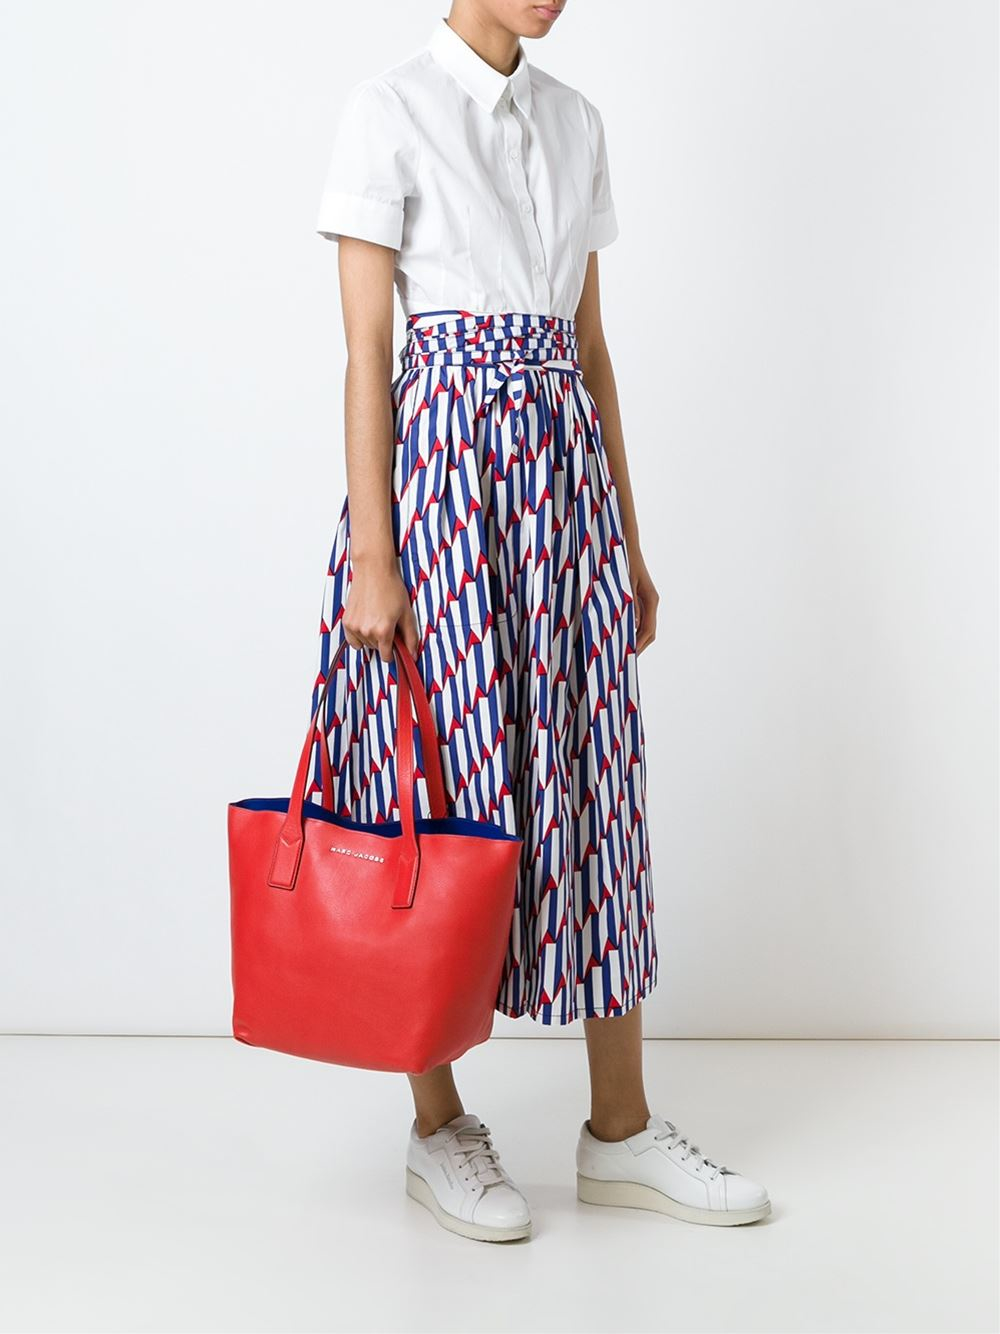 Marc Jacobs Leather Wingman Tote in Red (Pink)